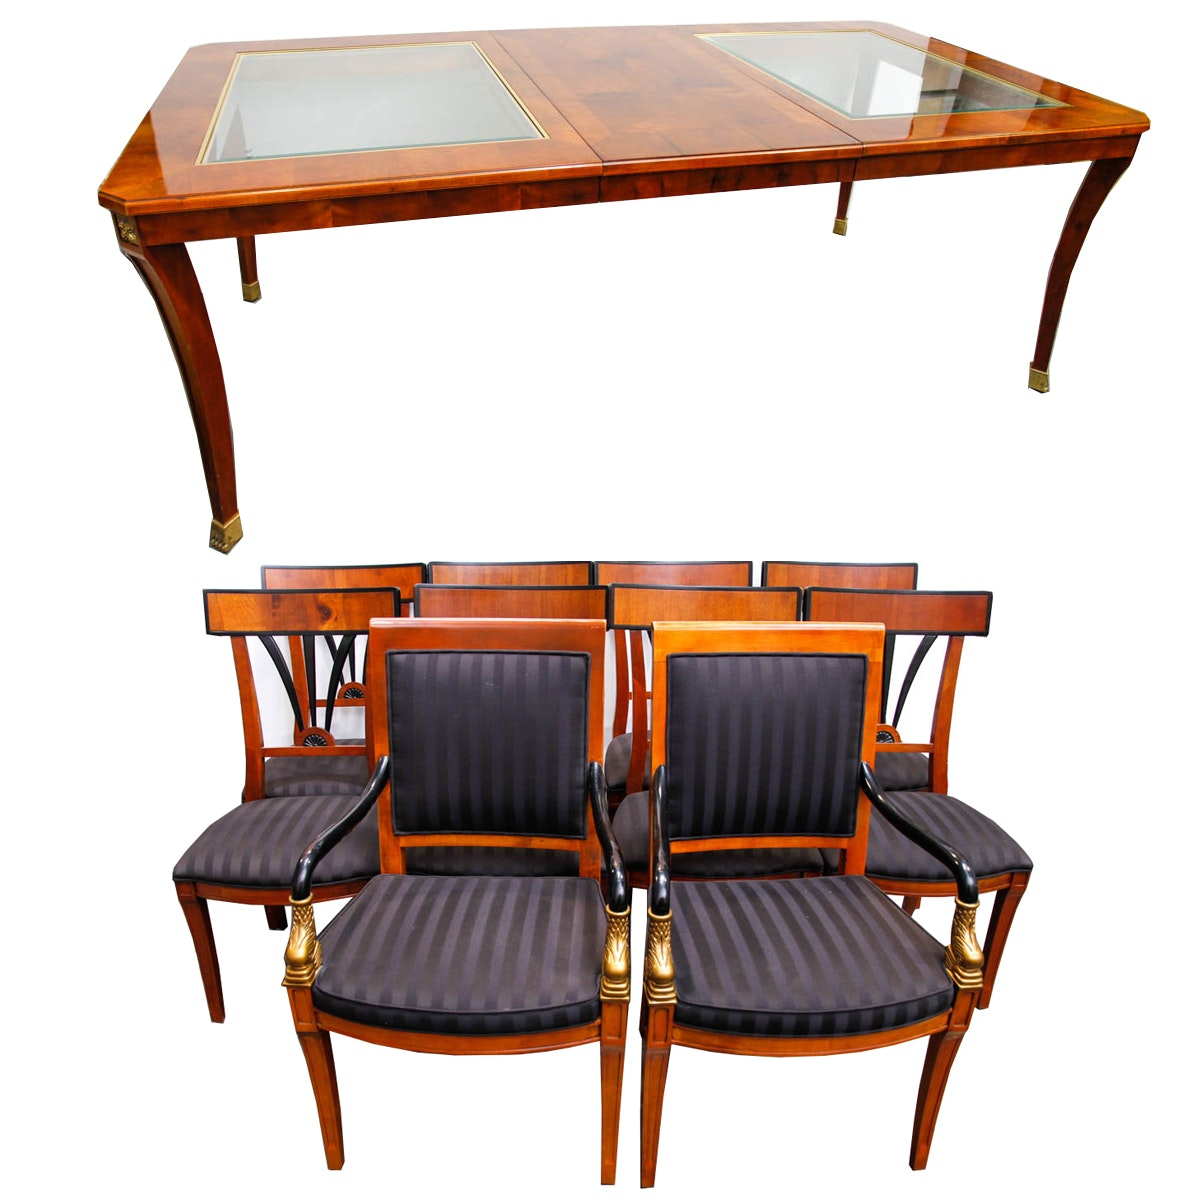 Biedermeier Style Eleven-Piece Dining Set by Century Furniture